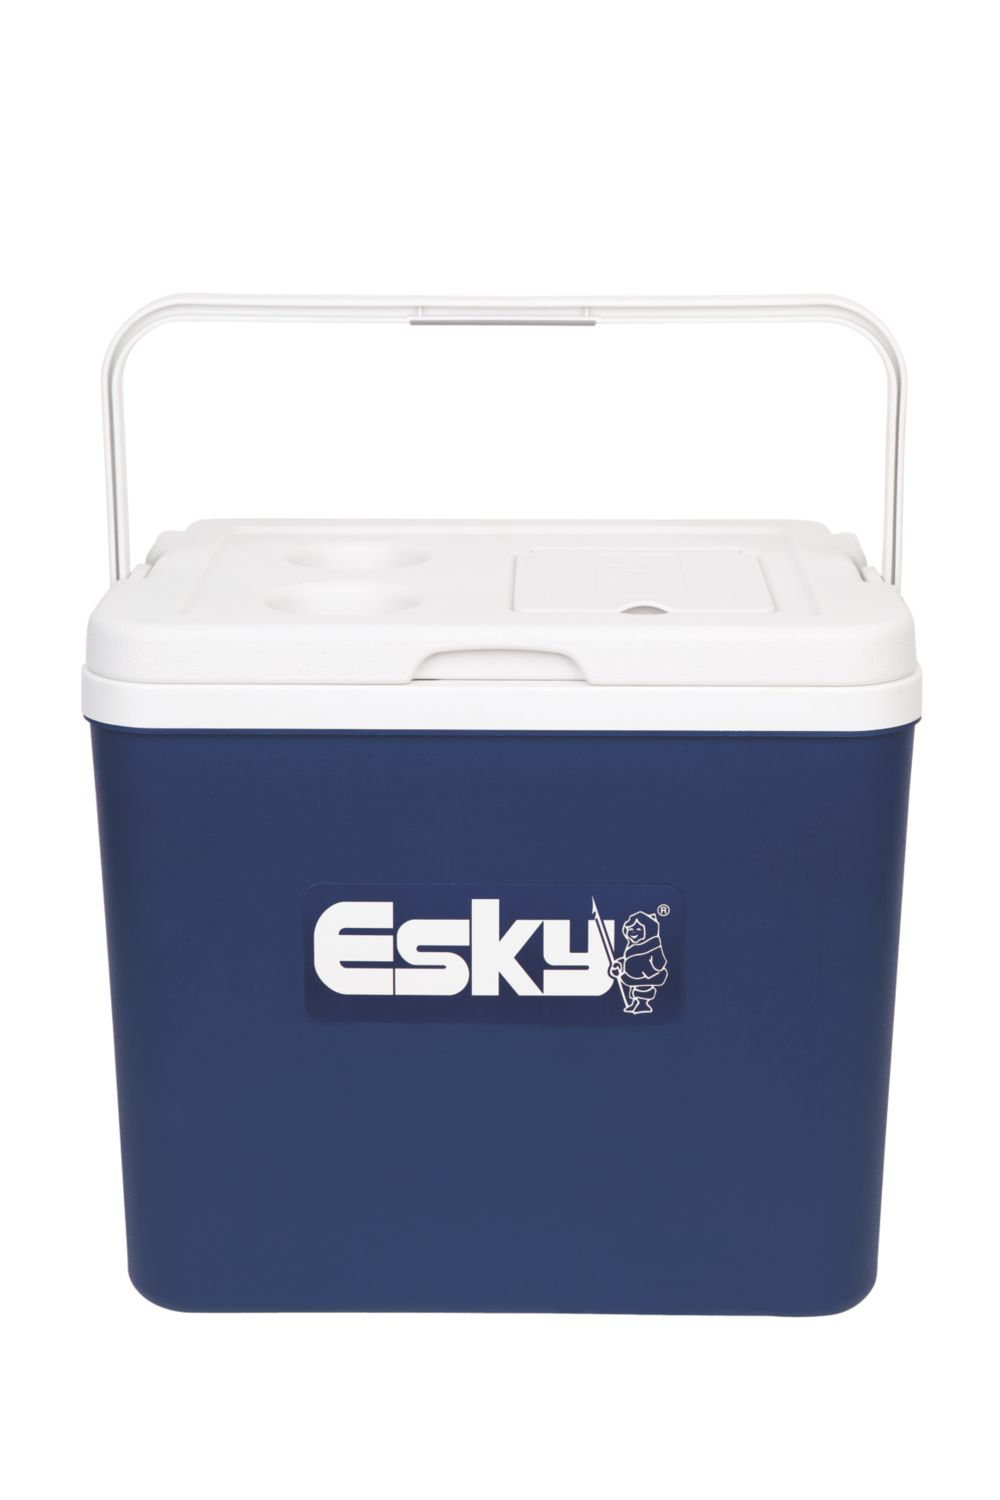 Esky® 33L Chilla Cooler with Easy Access Lid & Can Holders